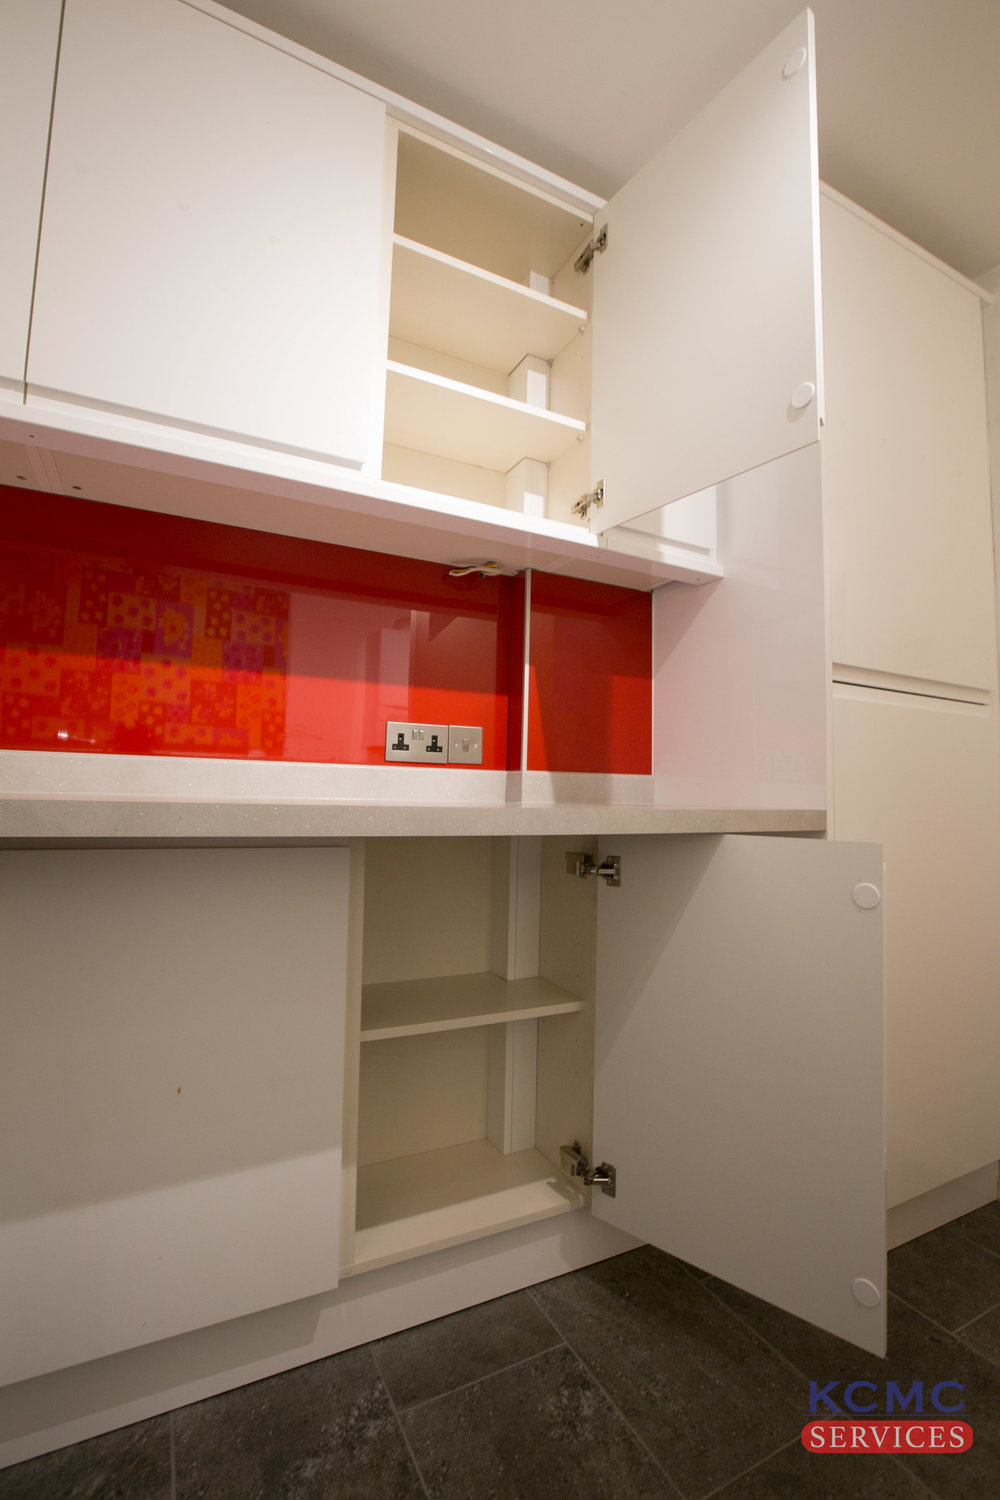 Kitchen SE28 KCMC Services-8.jpg